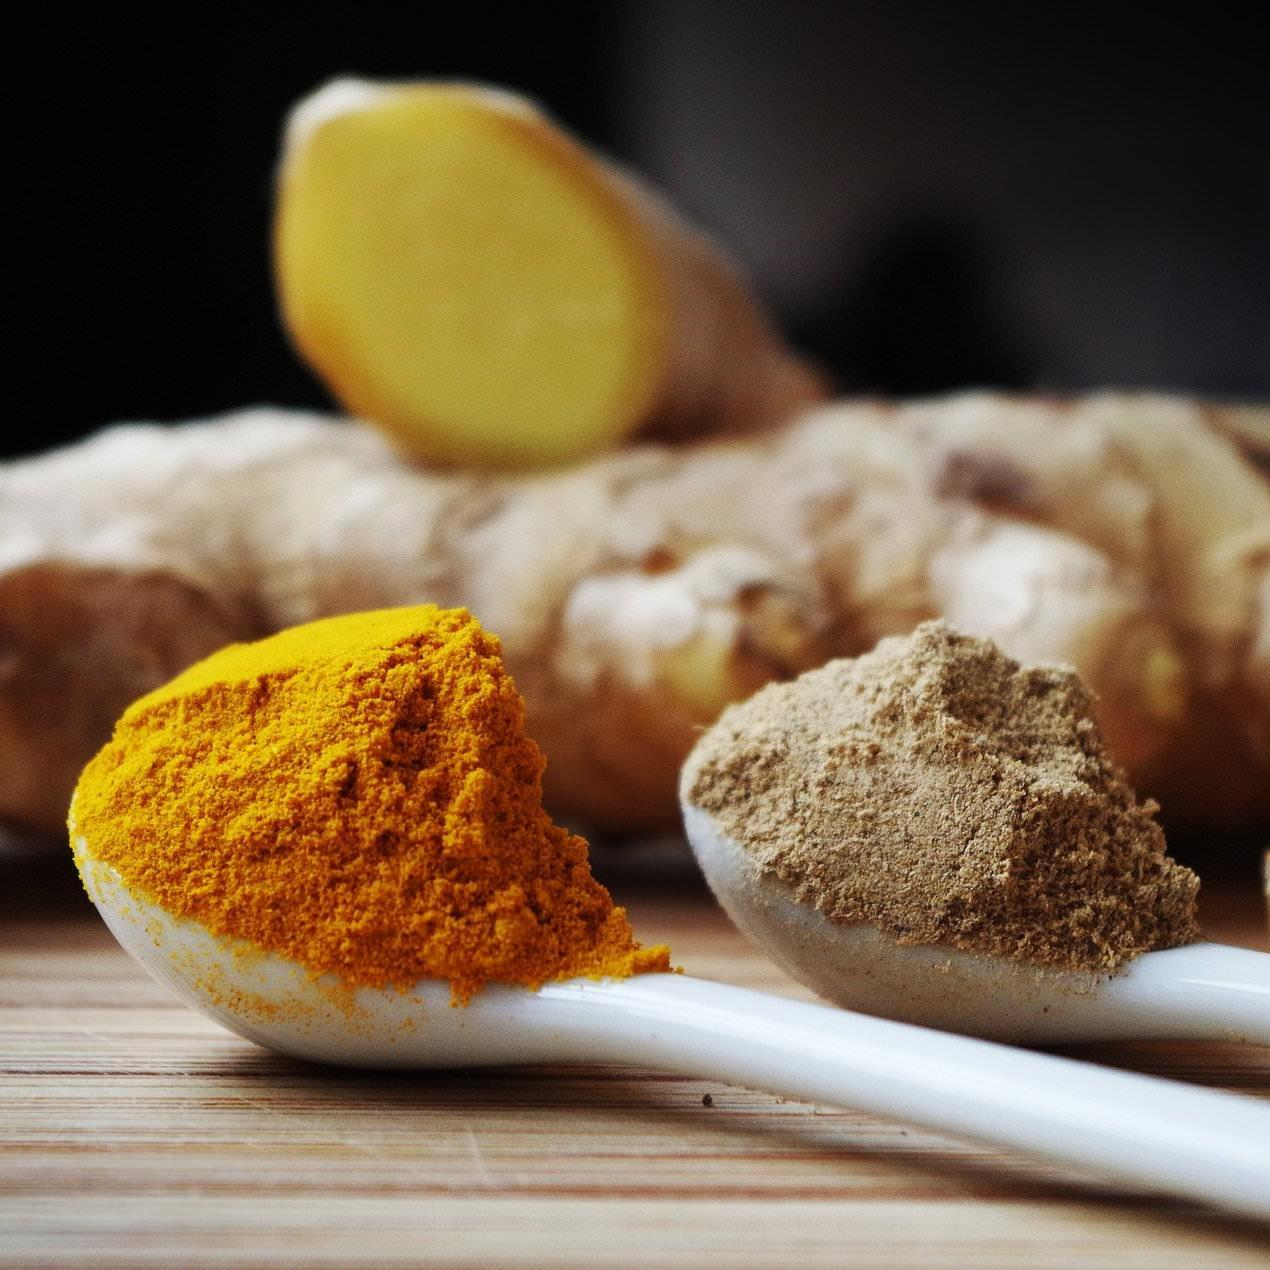 Can You Control Your Blood Sugar With Turmeric?